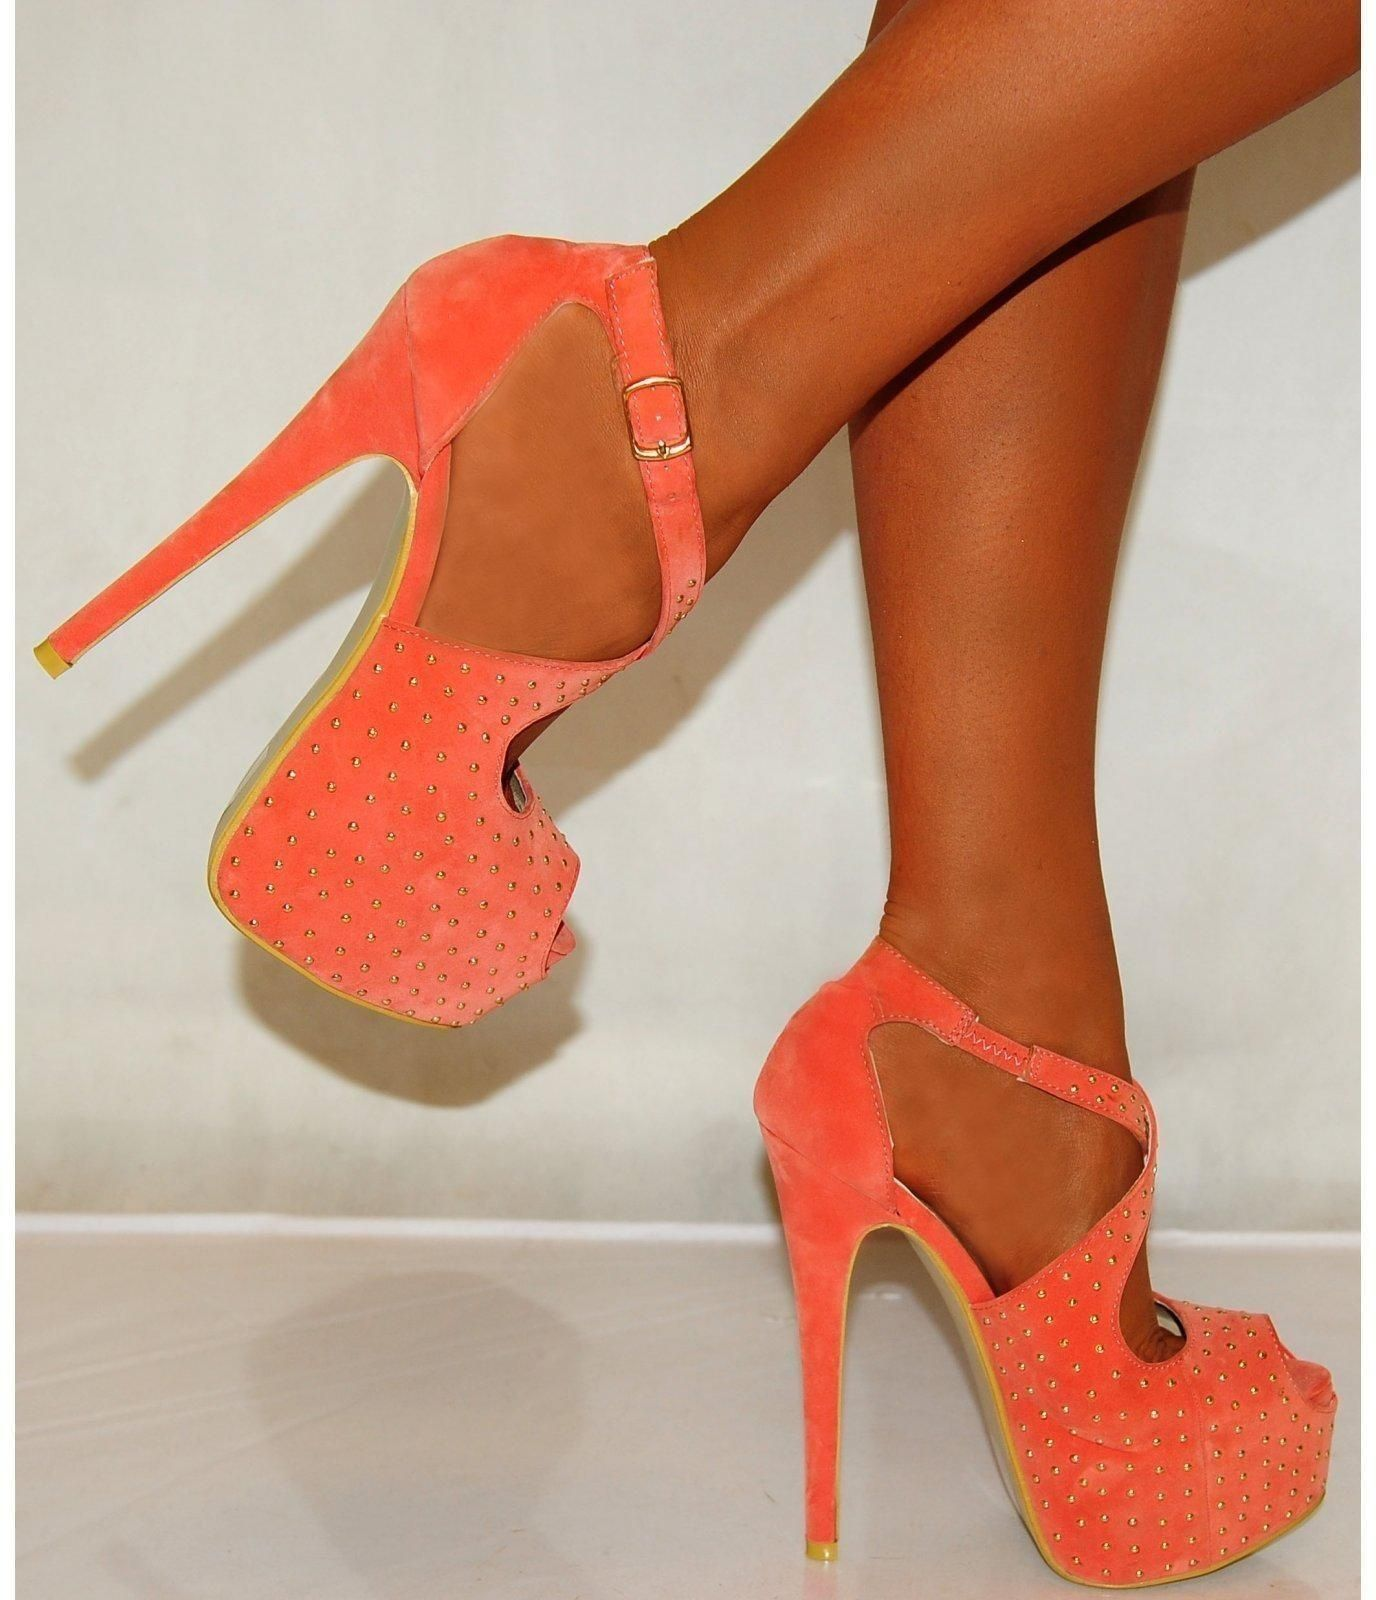 Coral Studded Pumps with Ankle Strap · Orange High HeelsOrange ...